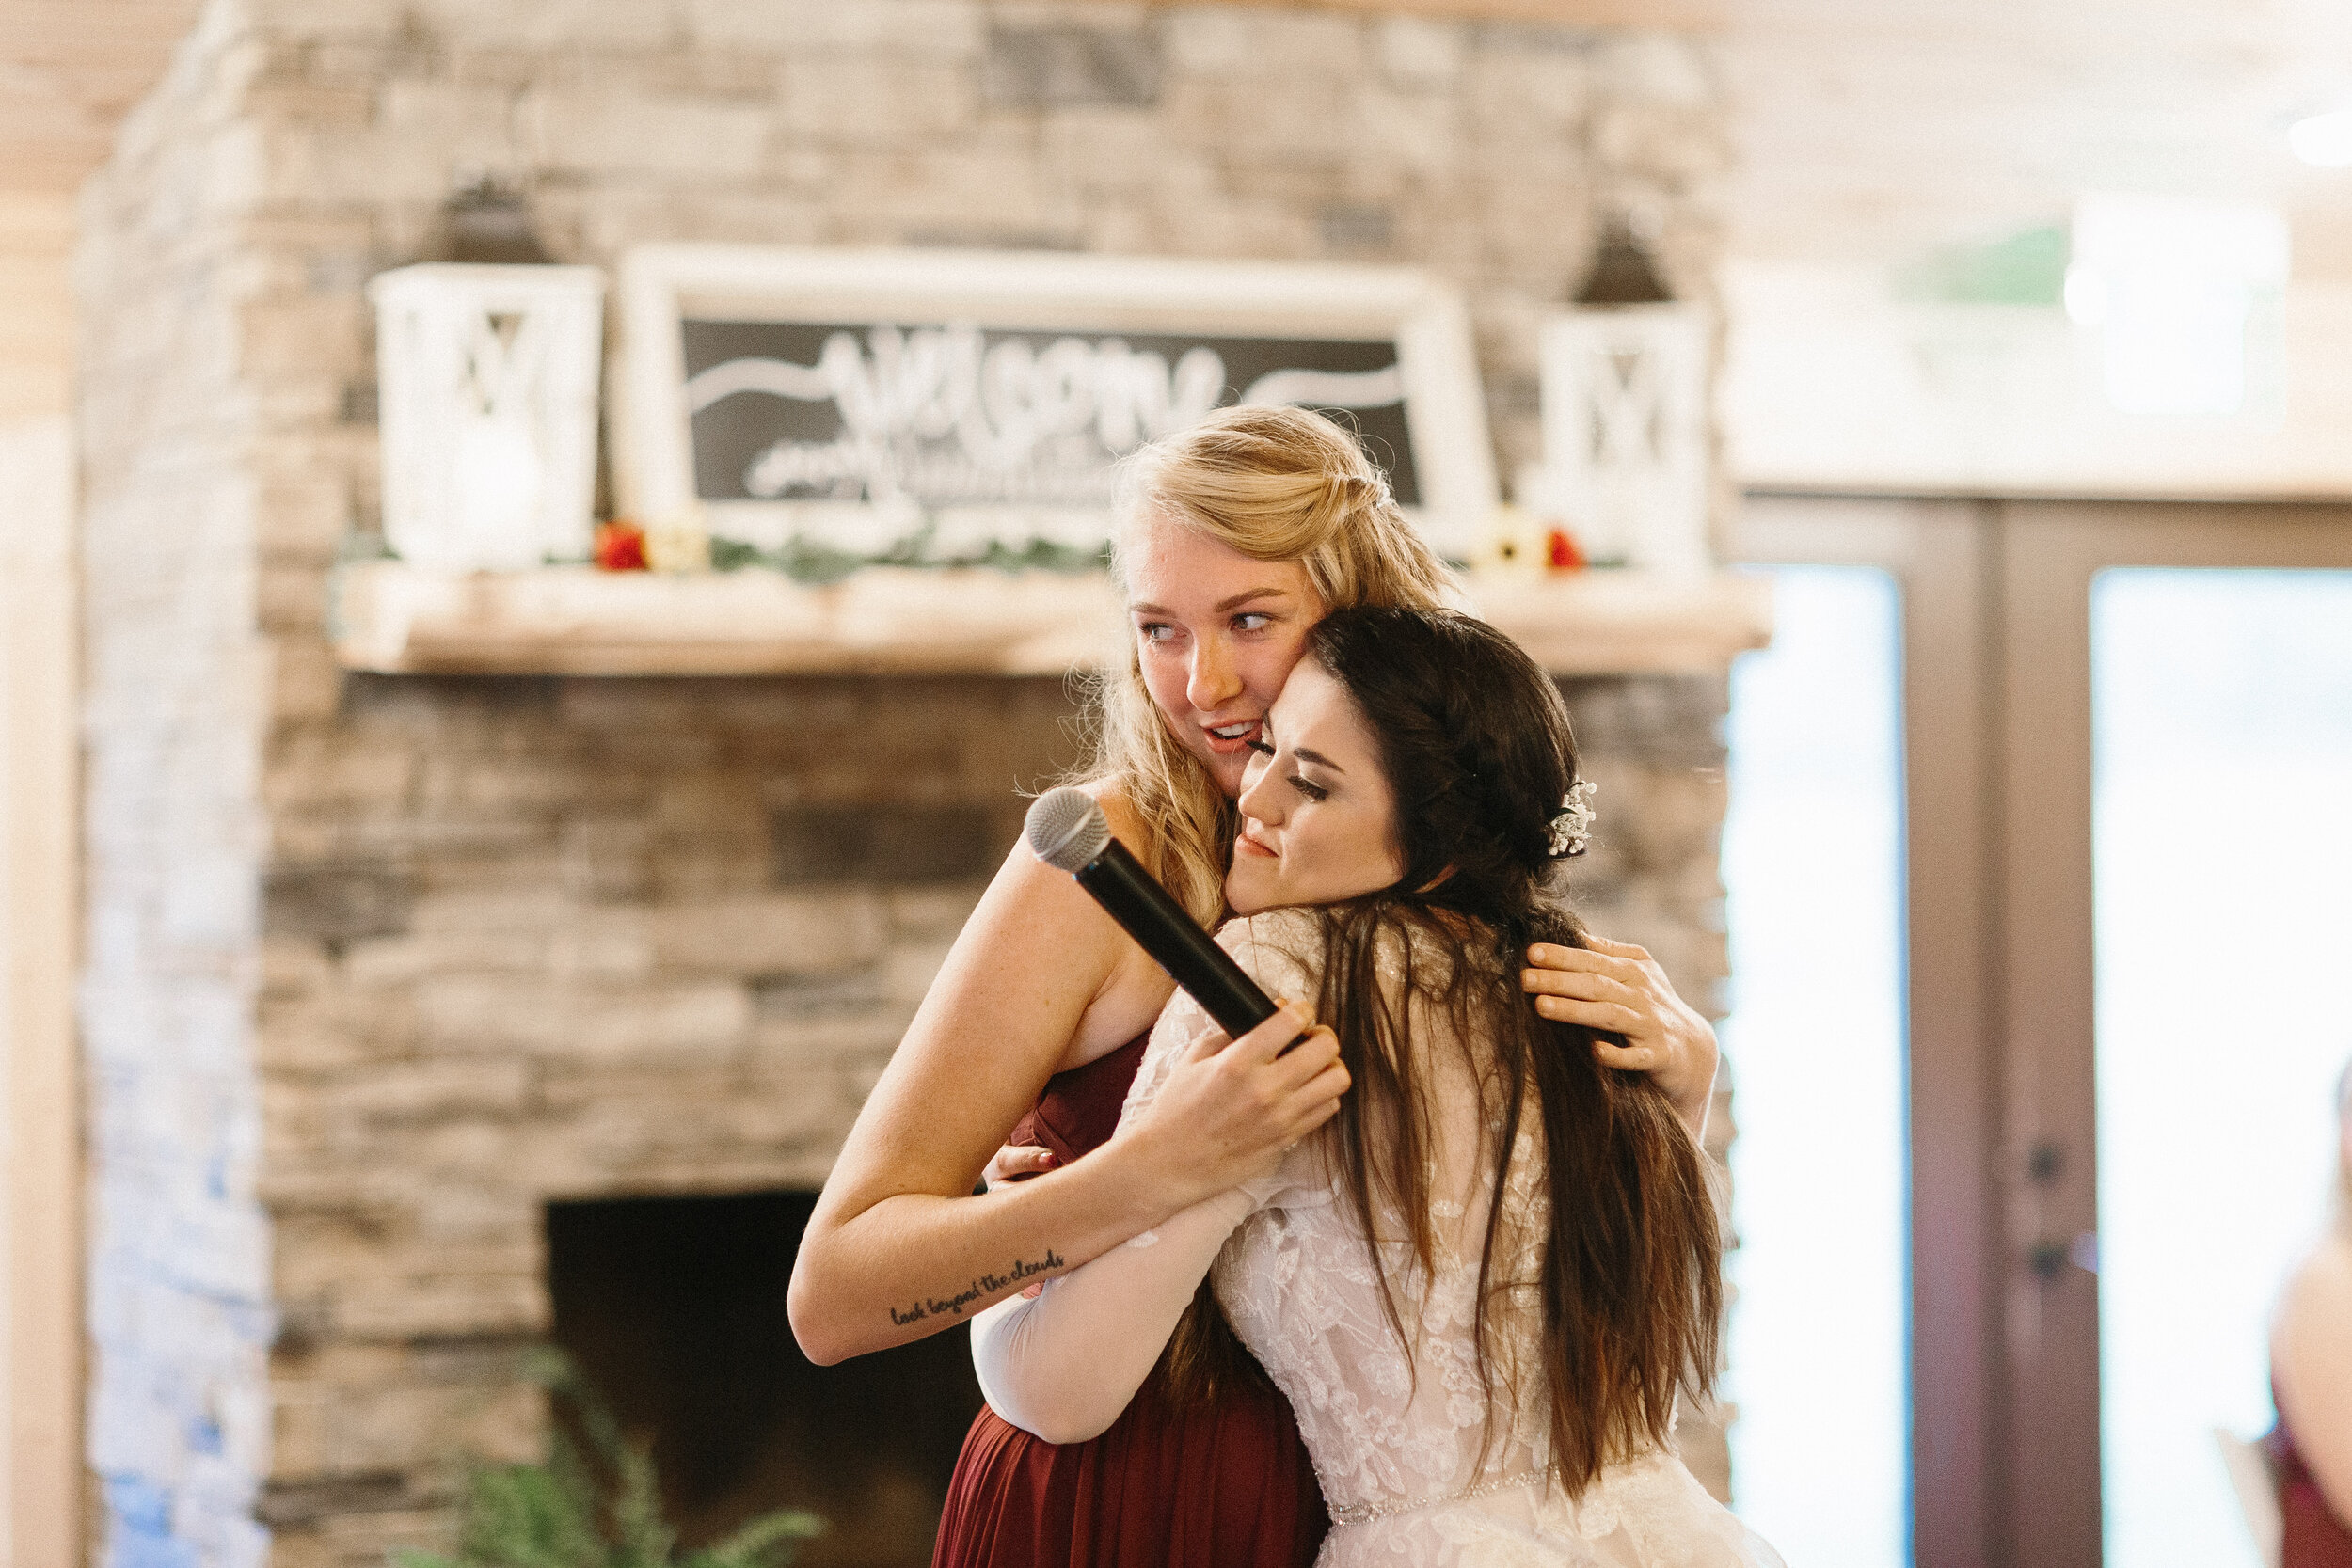 atlanta_wedding_photographers_georgia_same_sex_rustic_barn_farm_lesbian_weddings_inclusive_3133.jpg